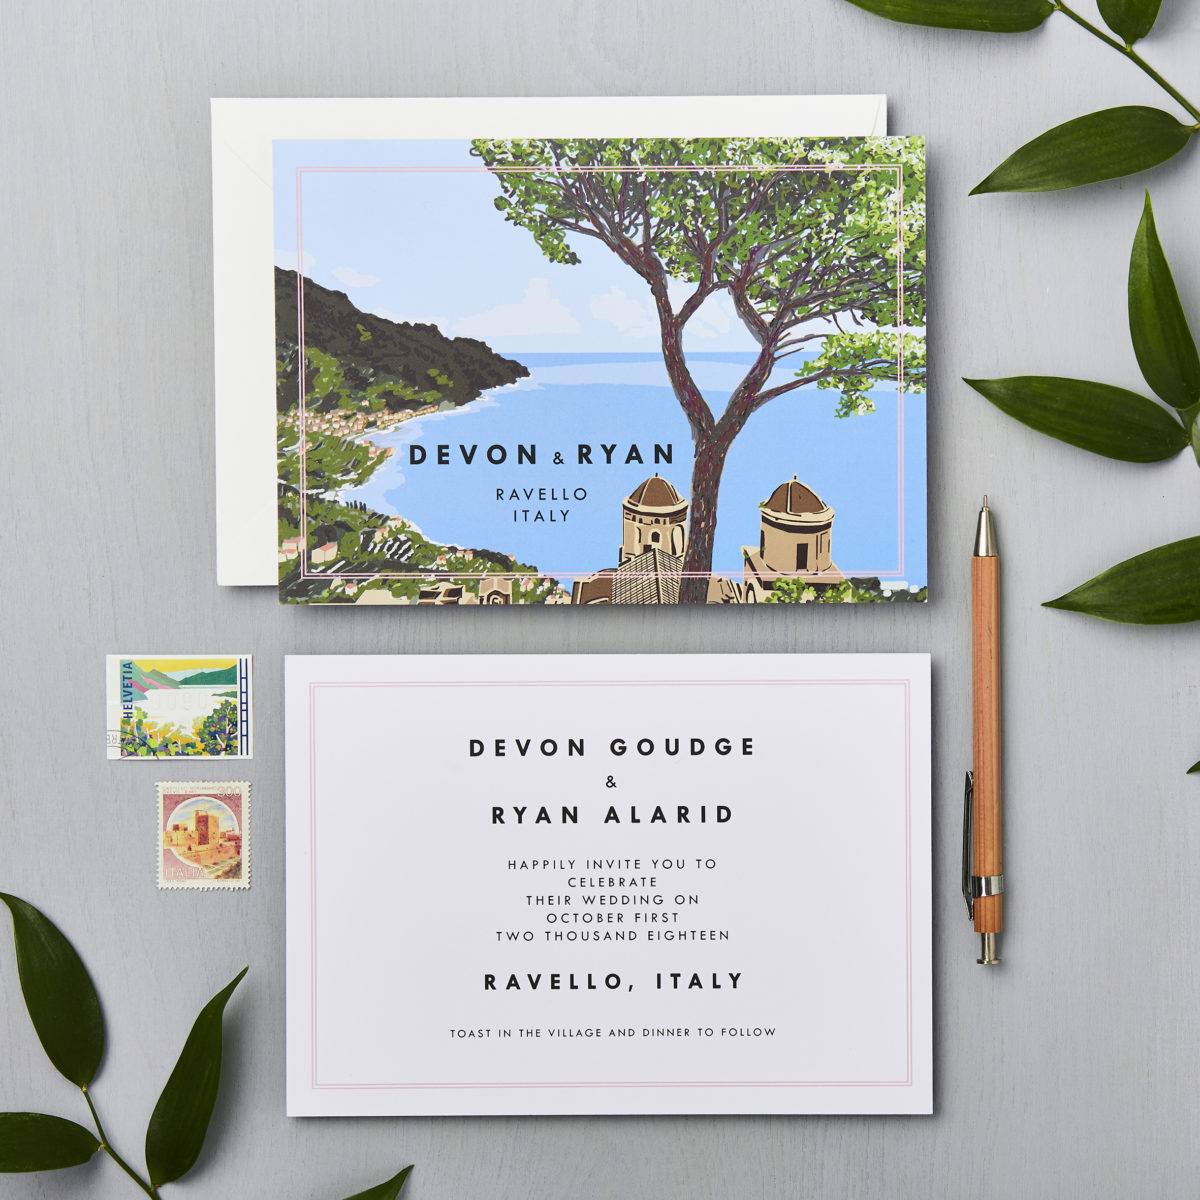 italian wedding Ravello amalfi venue illustration wedding invite lucysaysido